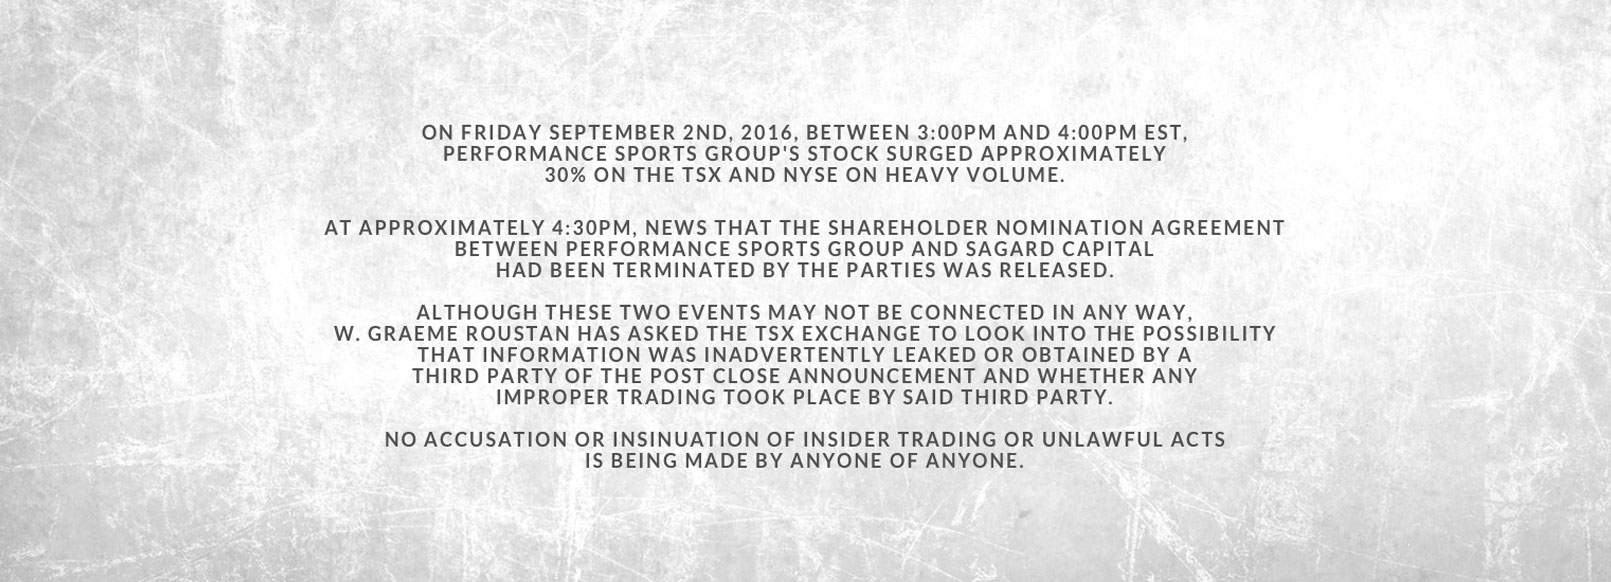 Home Page Sliders Shareholder Statement